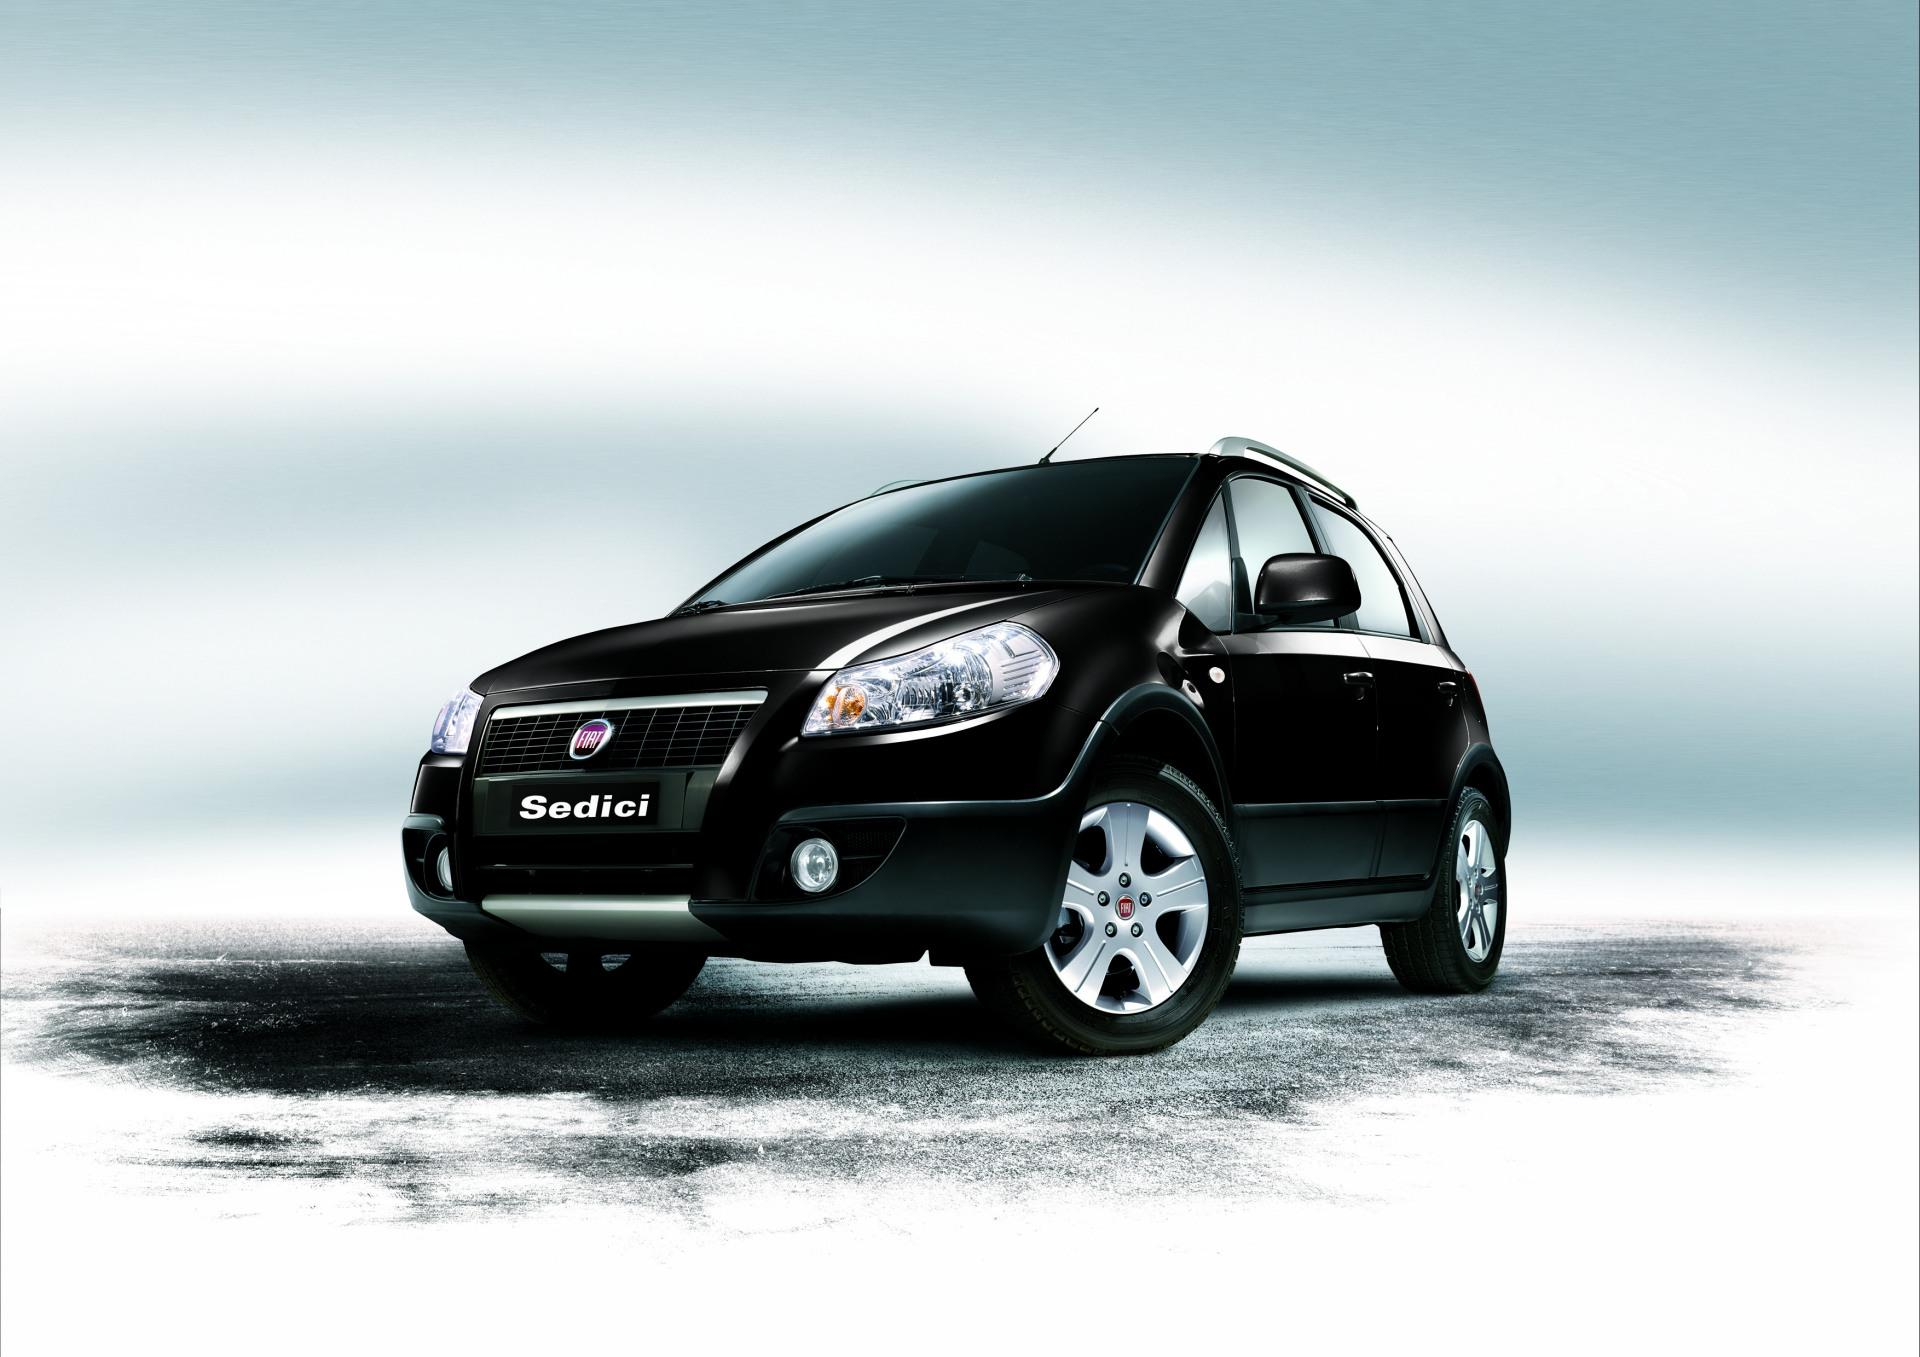 2010 Fiat Sedici News And Information Conceptcarz Com